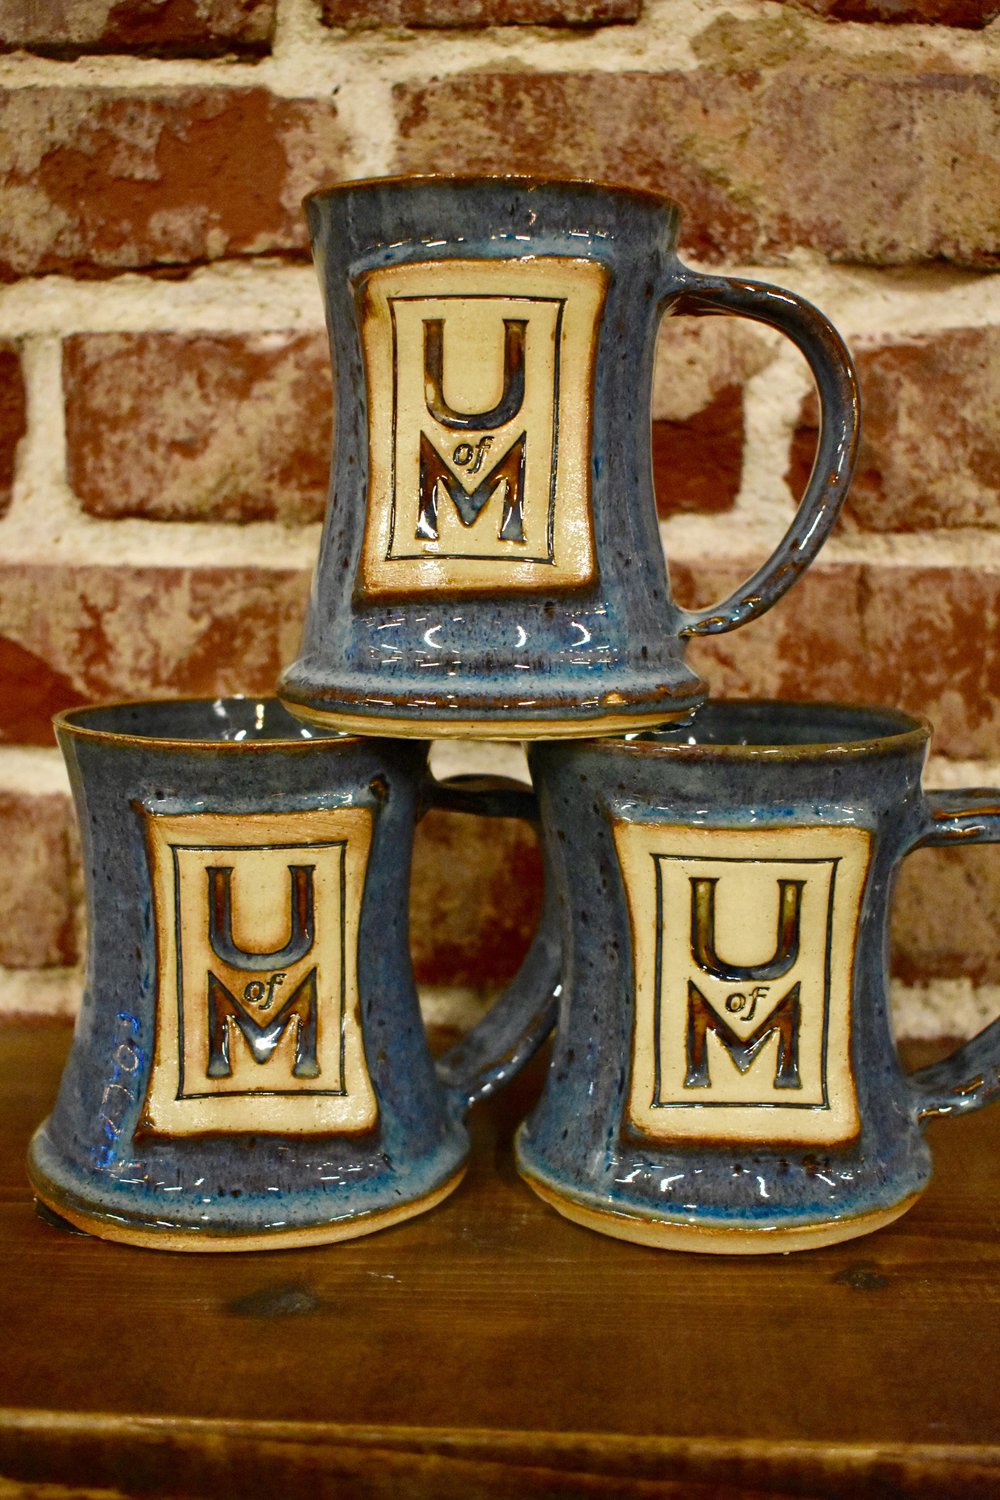 A set of U of M mugs created at The \Belltower Artisans+